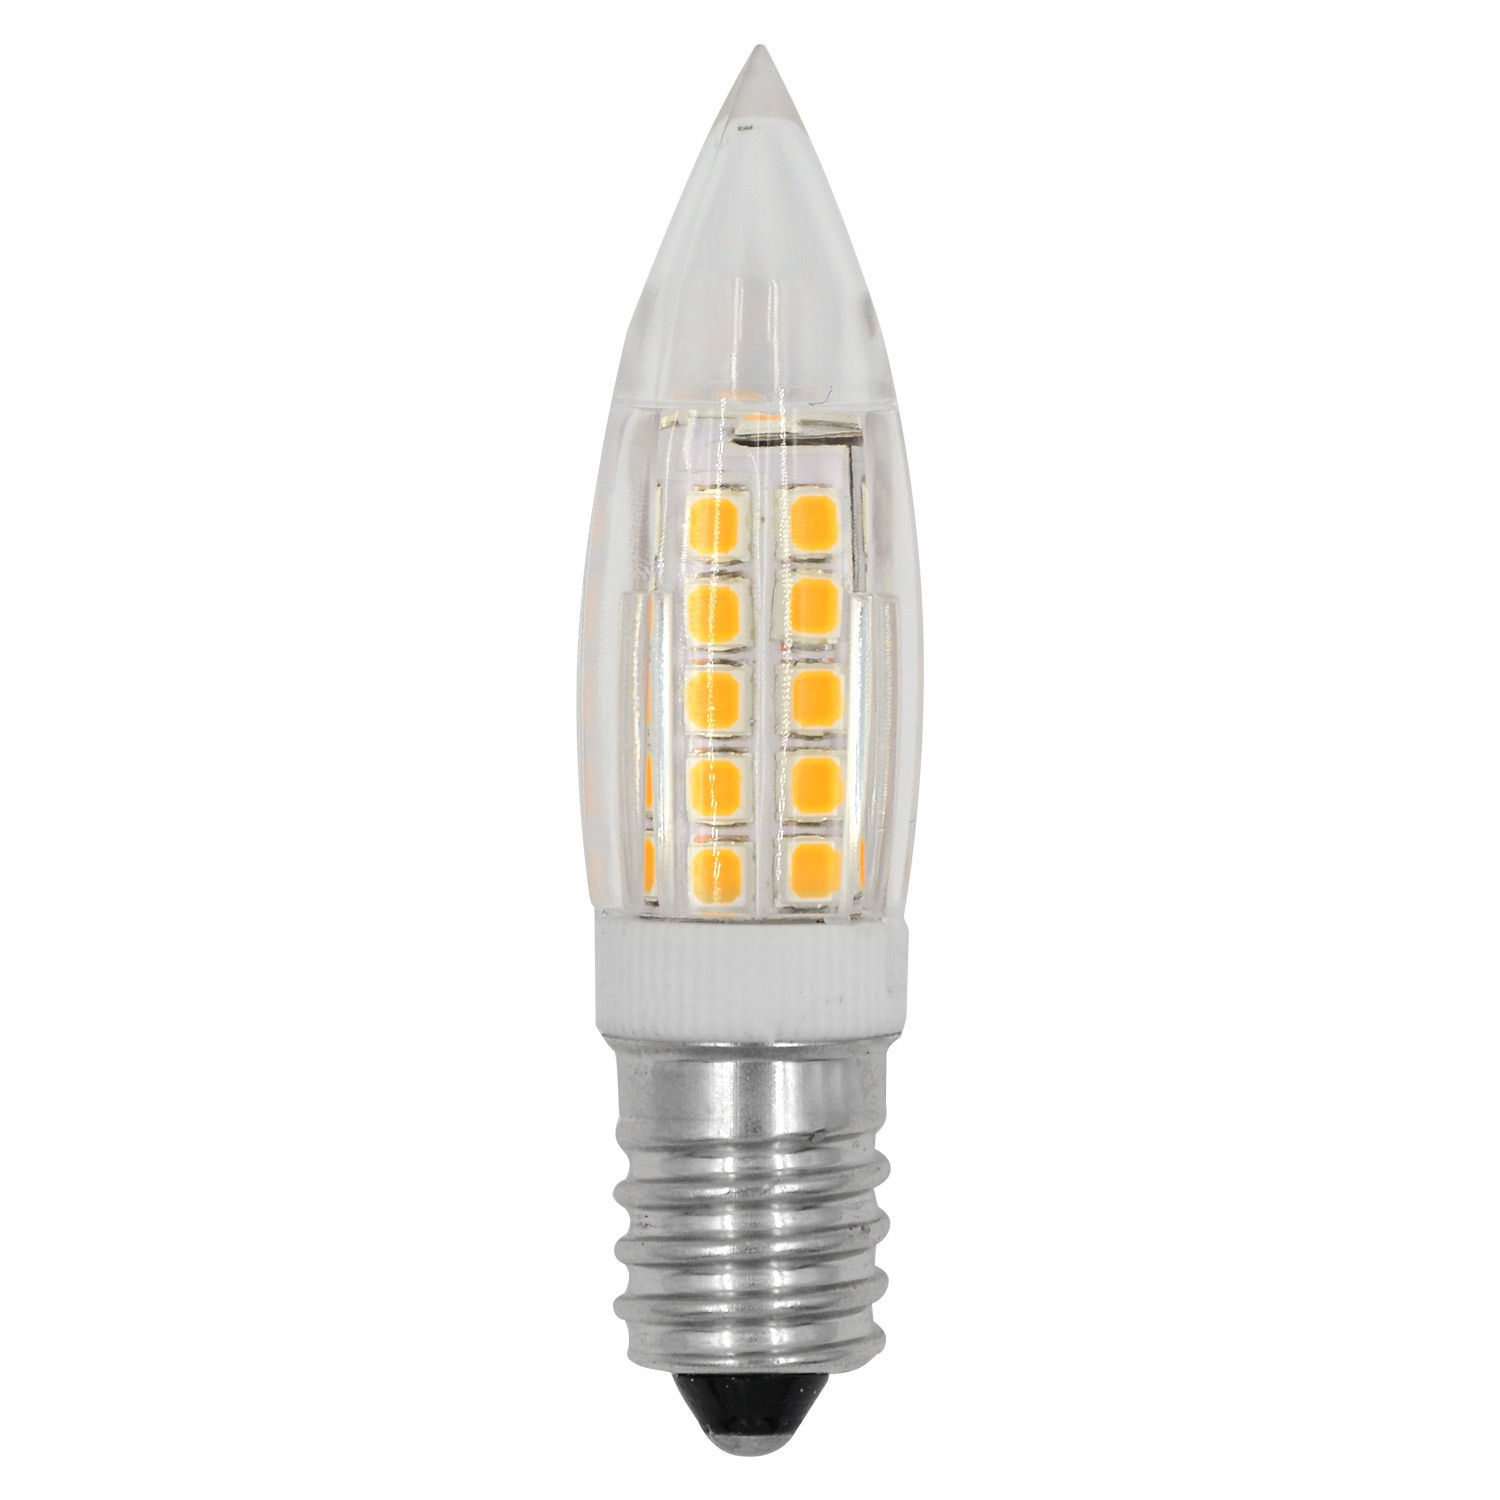 Mengsled Mengs E14 5w Led Light 44x 2835 Smd Led Bulb Lamp In Warm White Cool White Energy